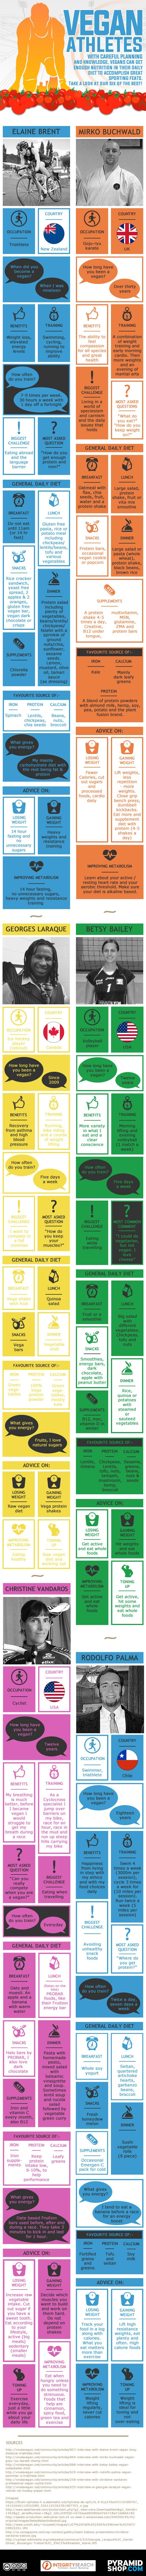 How 6 Vegan Athletes Fuel Themselves for Optimal Performance – Infographic